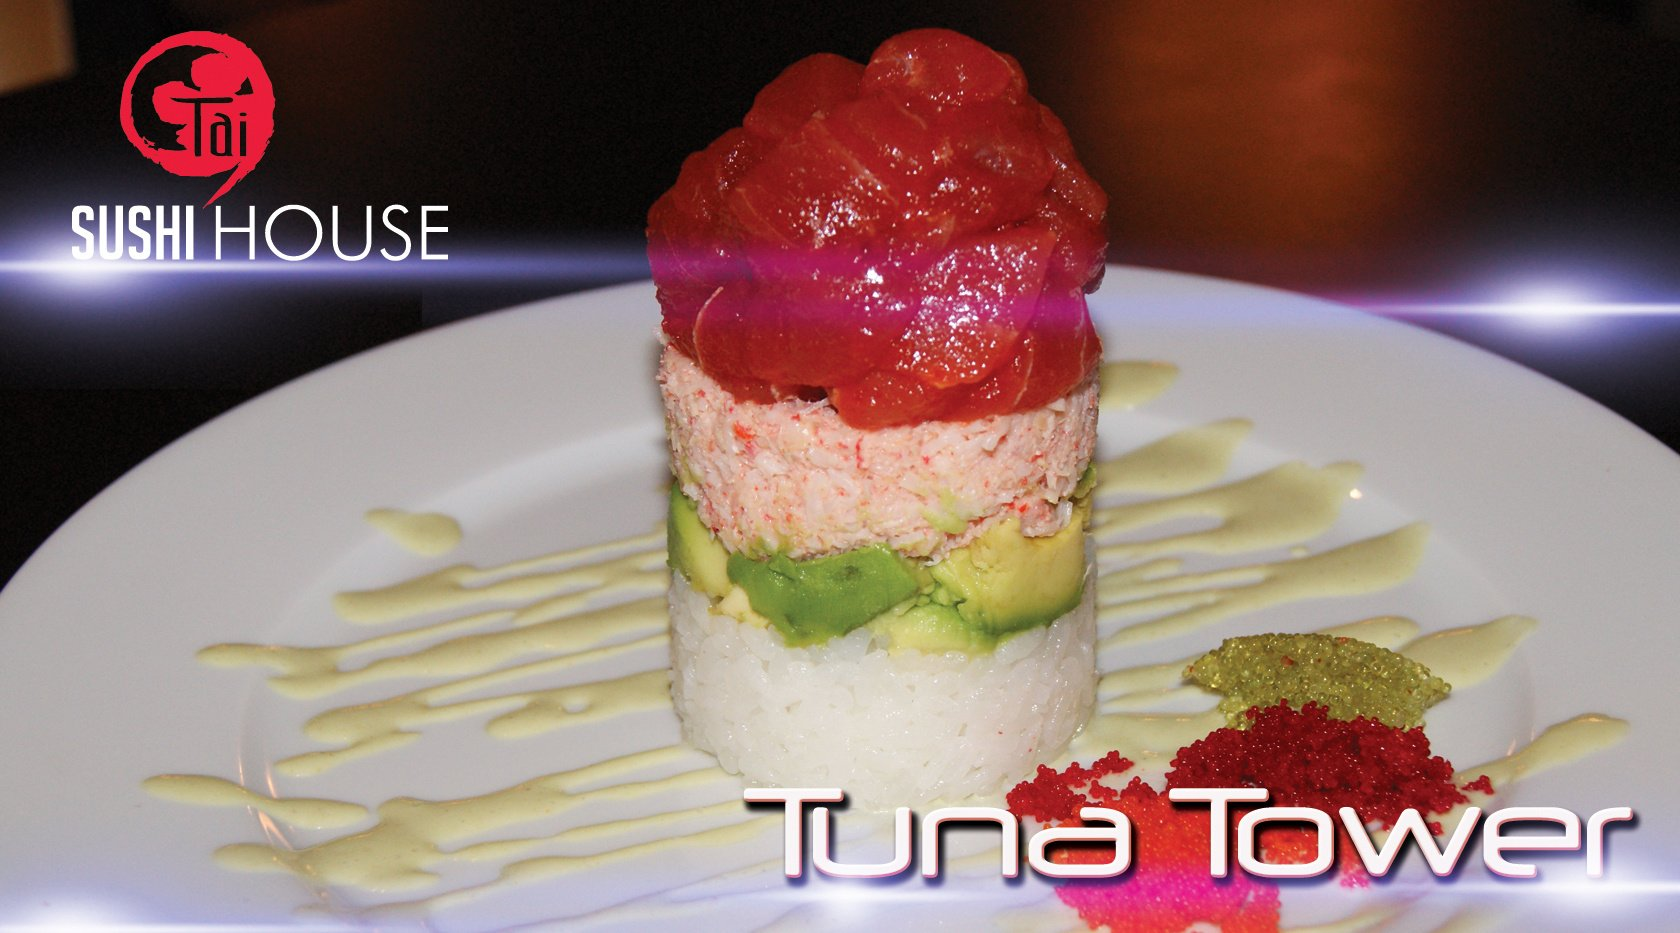 Tuna Tower